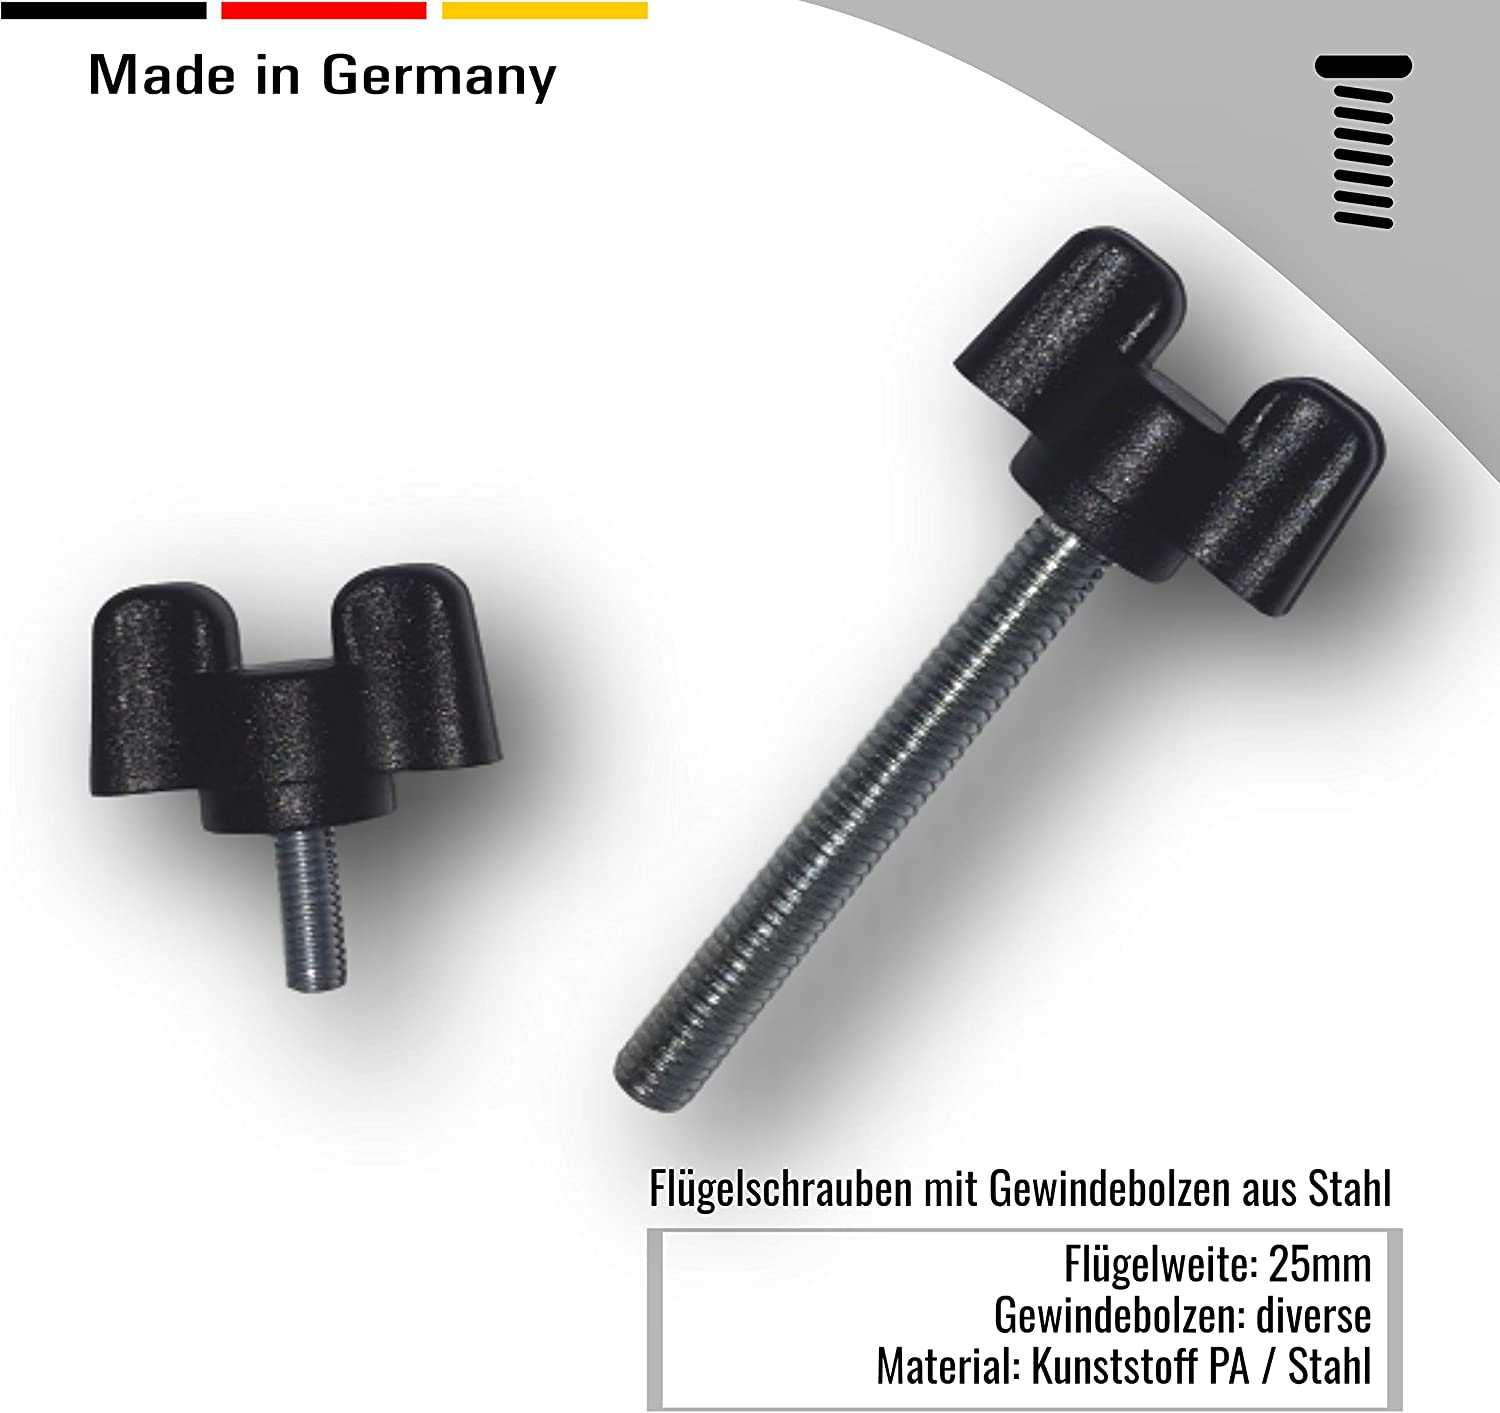 2 wing screws plastic with threaded bolts made of steel